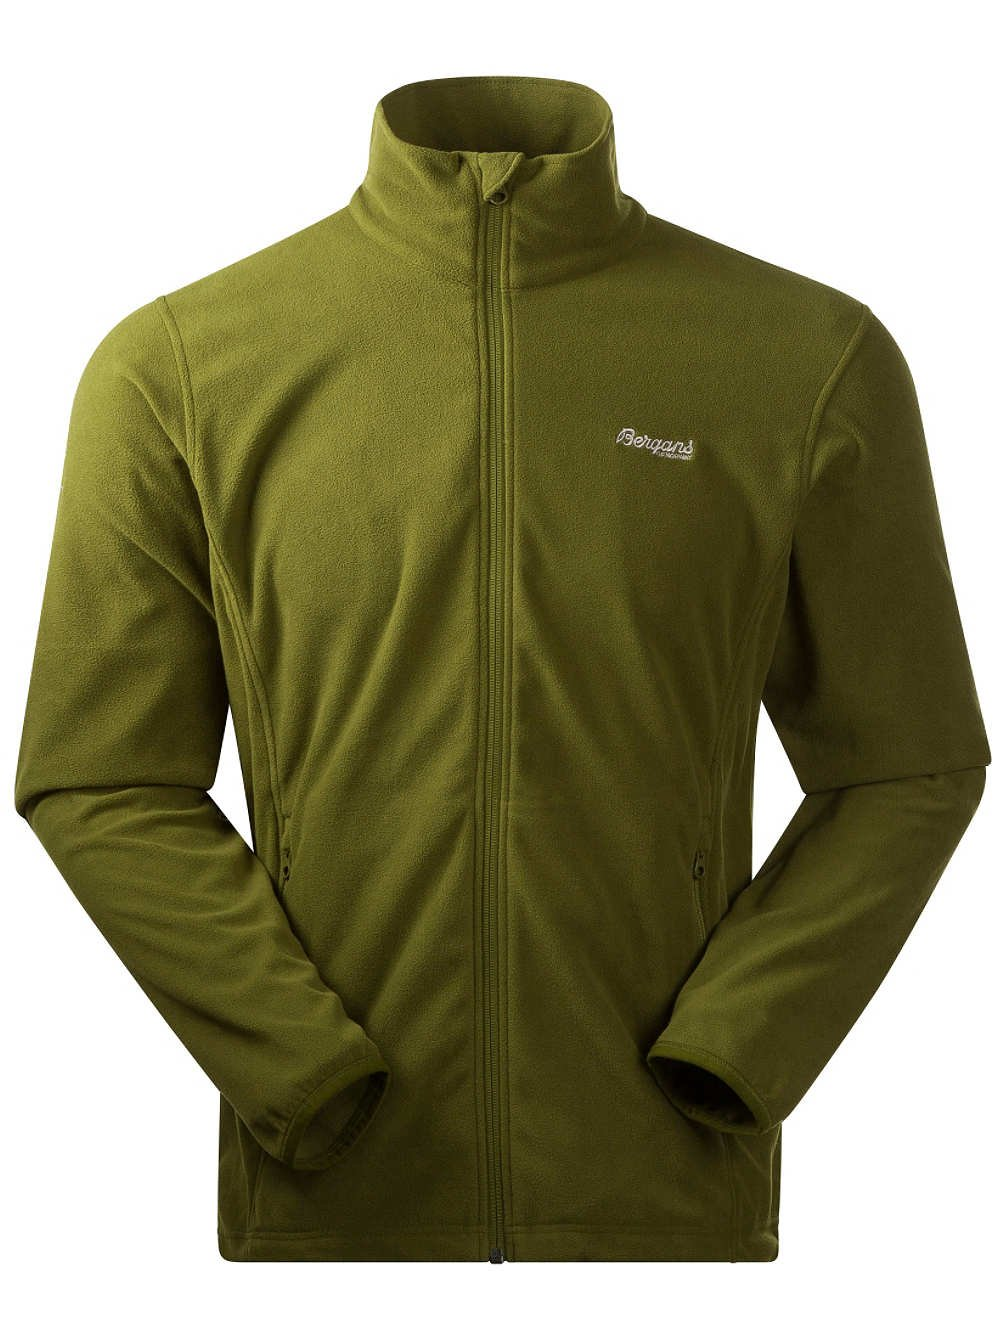 Bergans Men's Park City Fleece Jacket